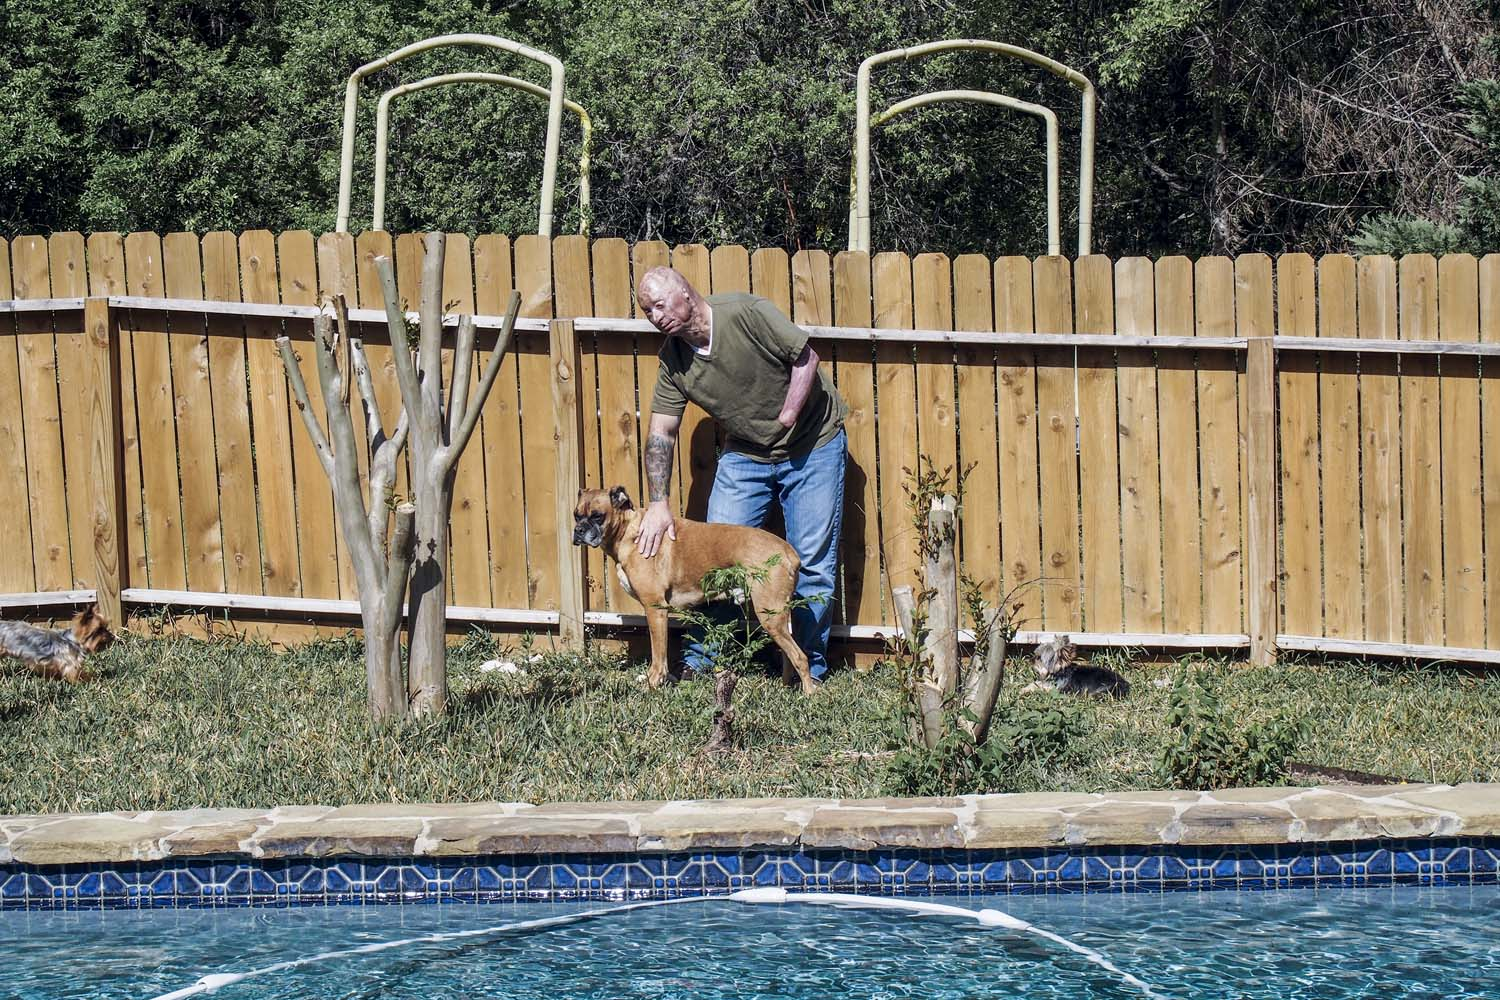 In the backyard of his home in San Antonio, 2013.